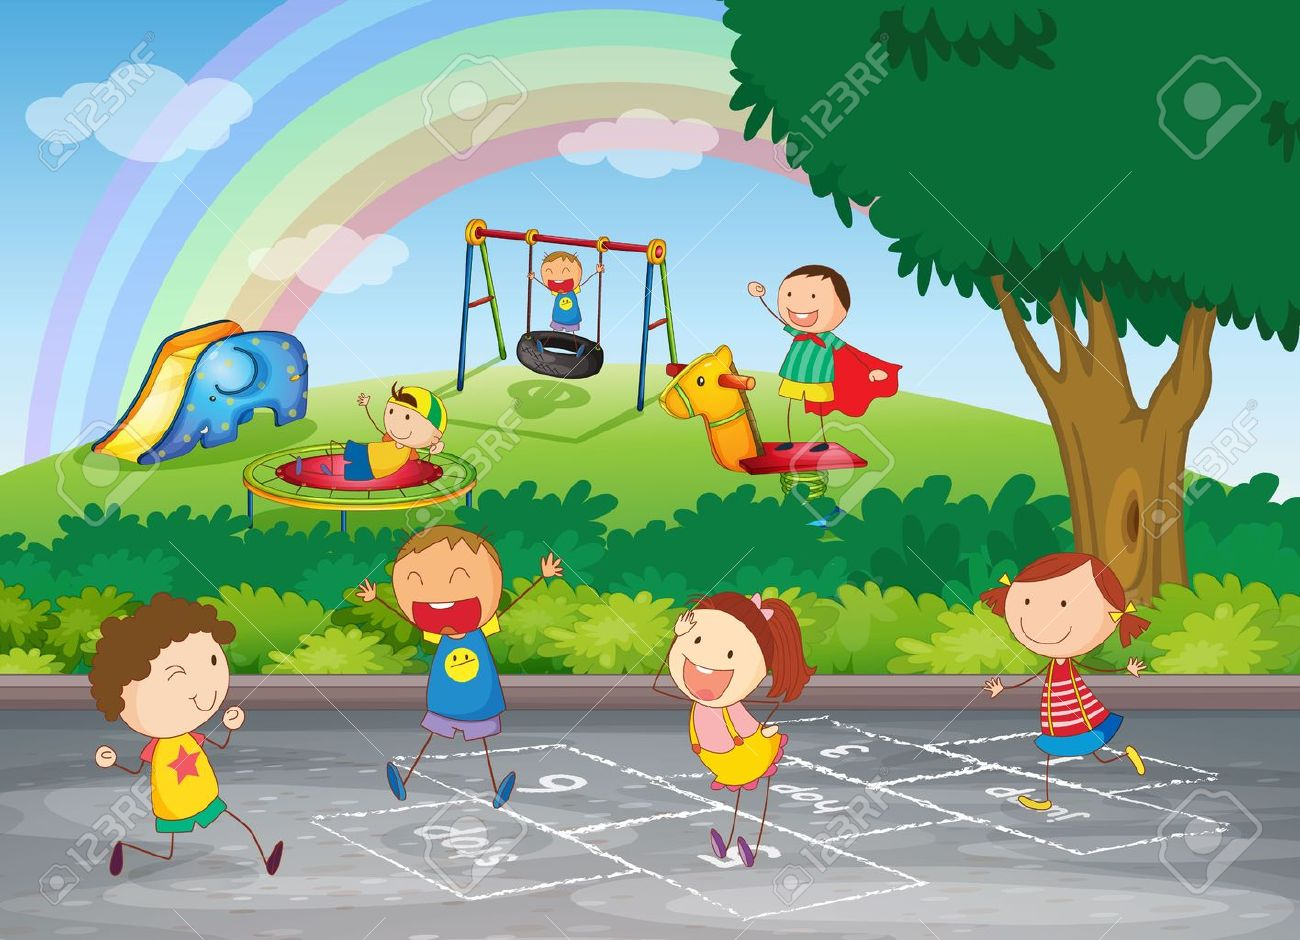 Garden drawing for kids - Garden Friends Illustration Of Kids Playing In A Beautiful Nature Illustration